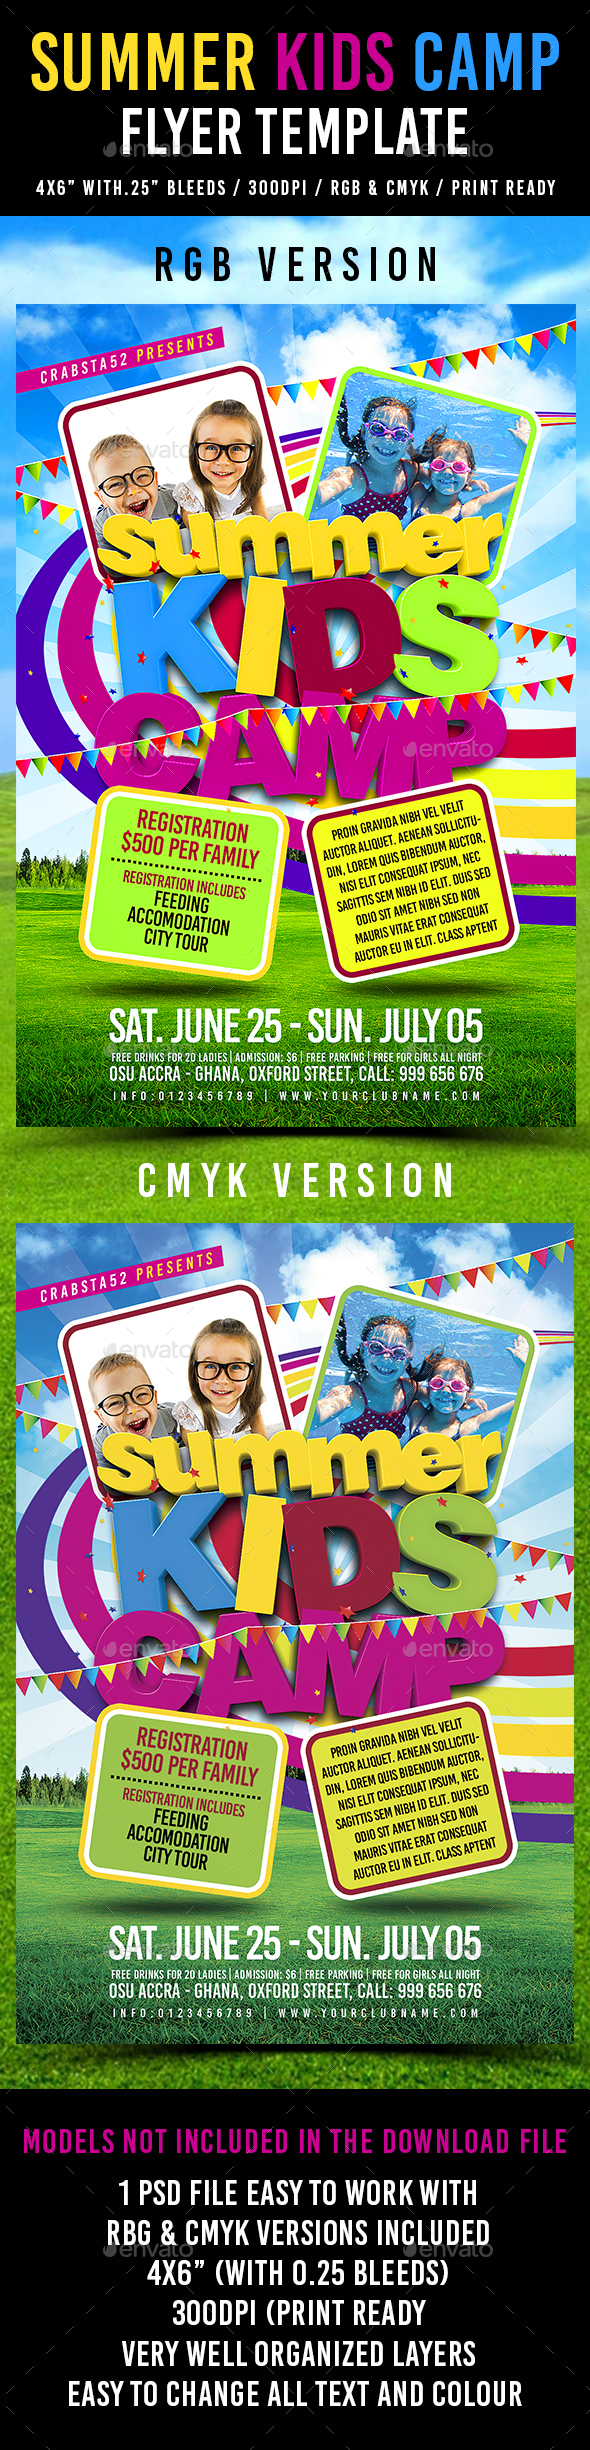 Summer Kids Camp Flyer Template - Events Flyers